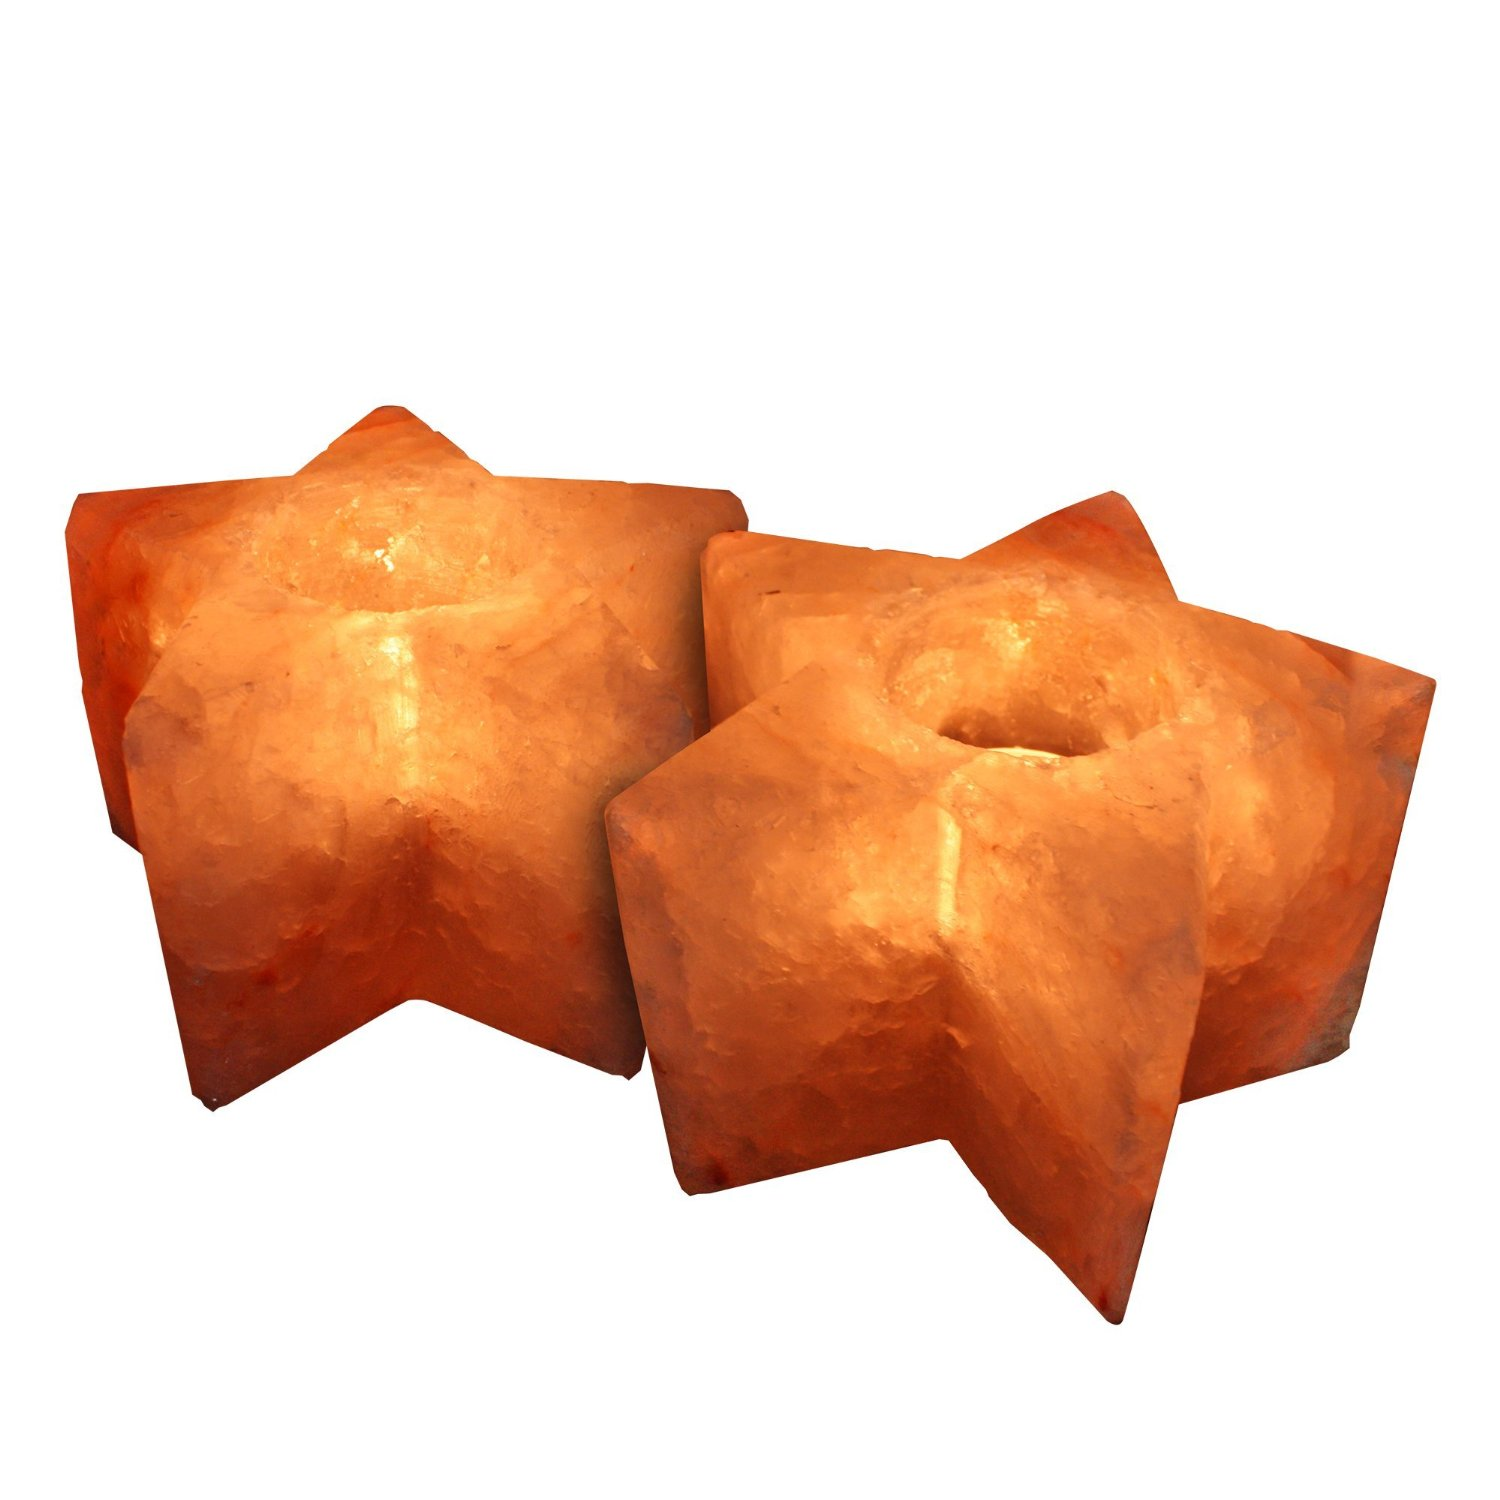 Crystal Allies Gallery: CA SCH-STAR-2pc Pack of 2 Natural Himalayan Star Shaped Salt Tealight Candle Holder Air Purifier & Ionizer w/ Authentic Crystal Allies Info Card